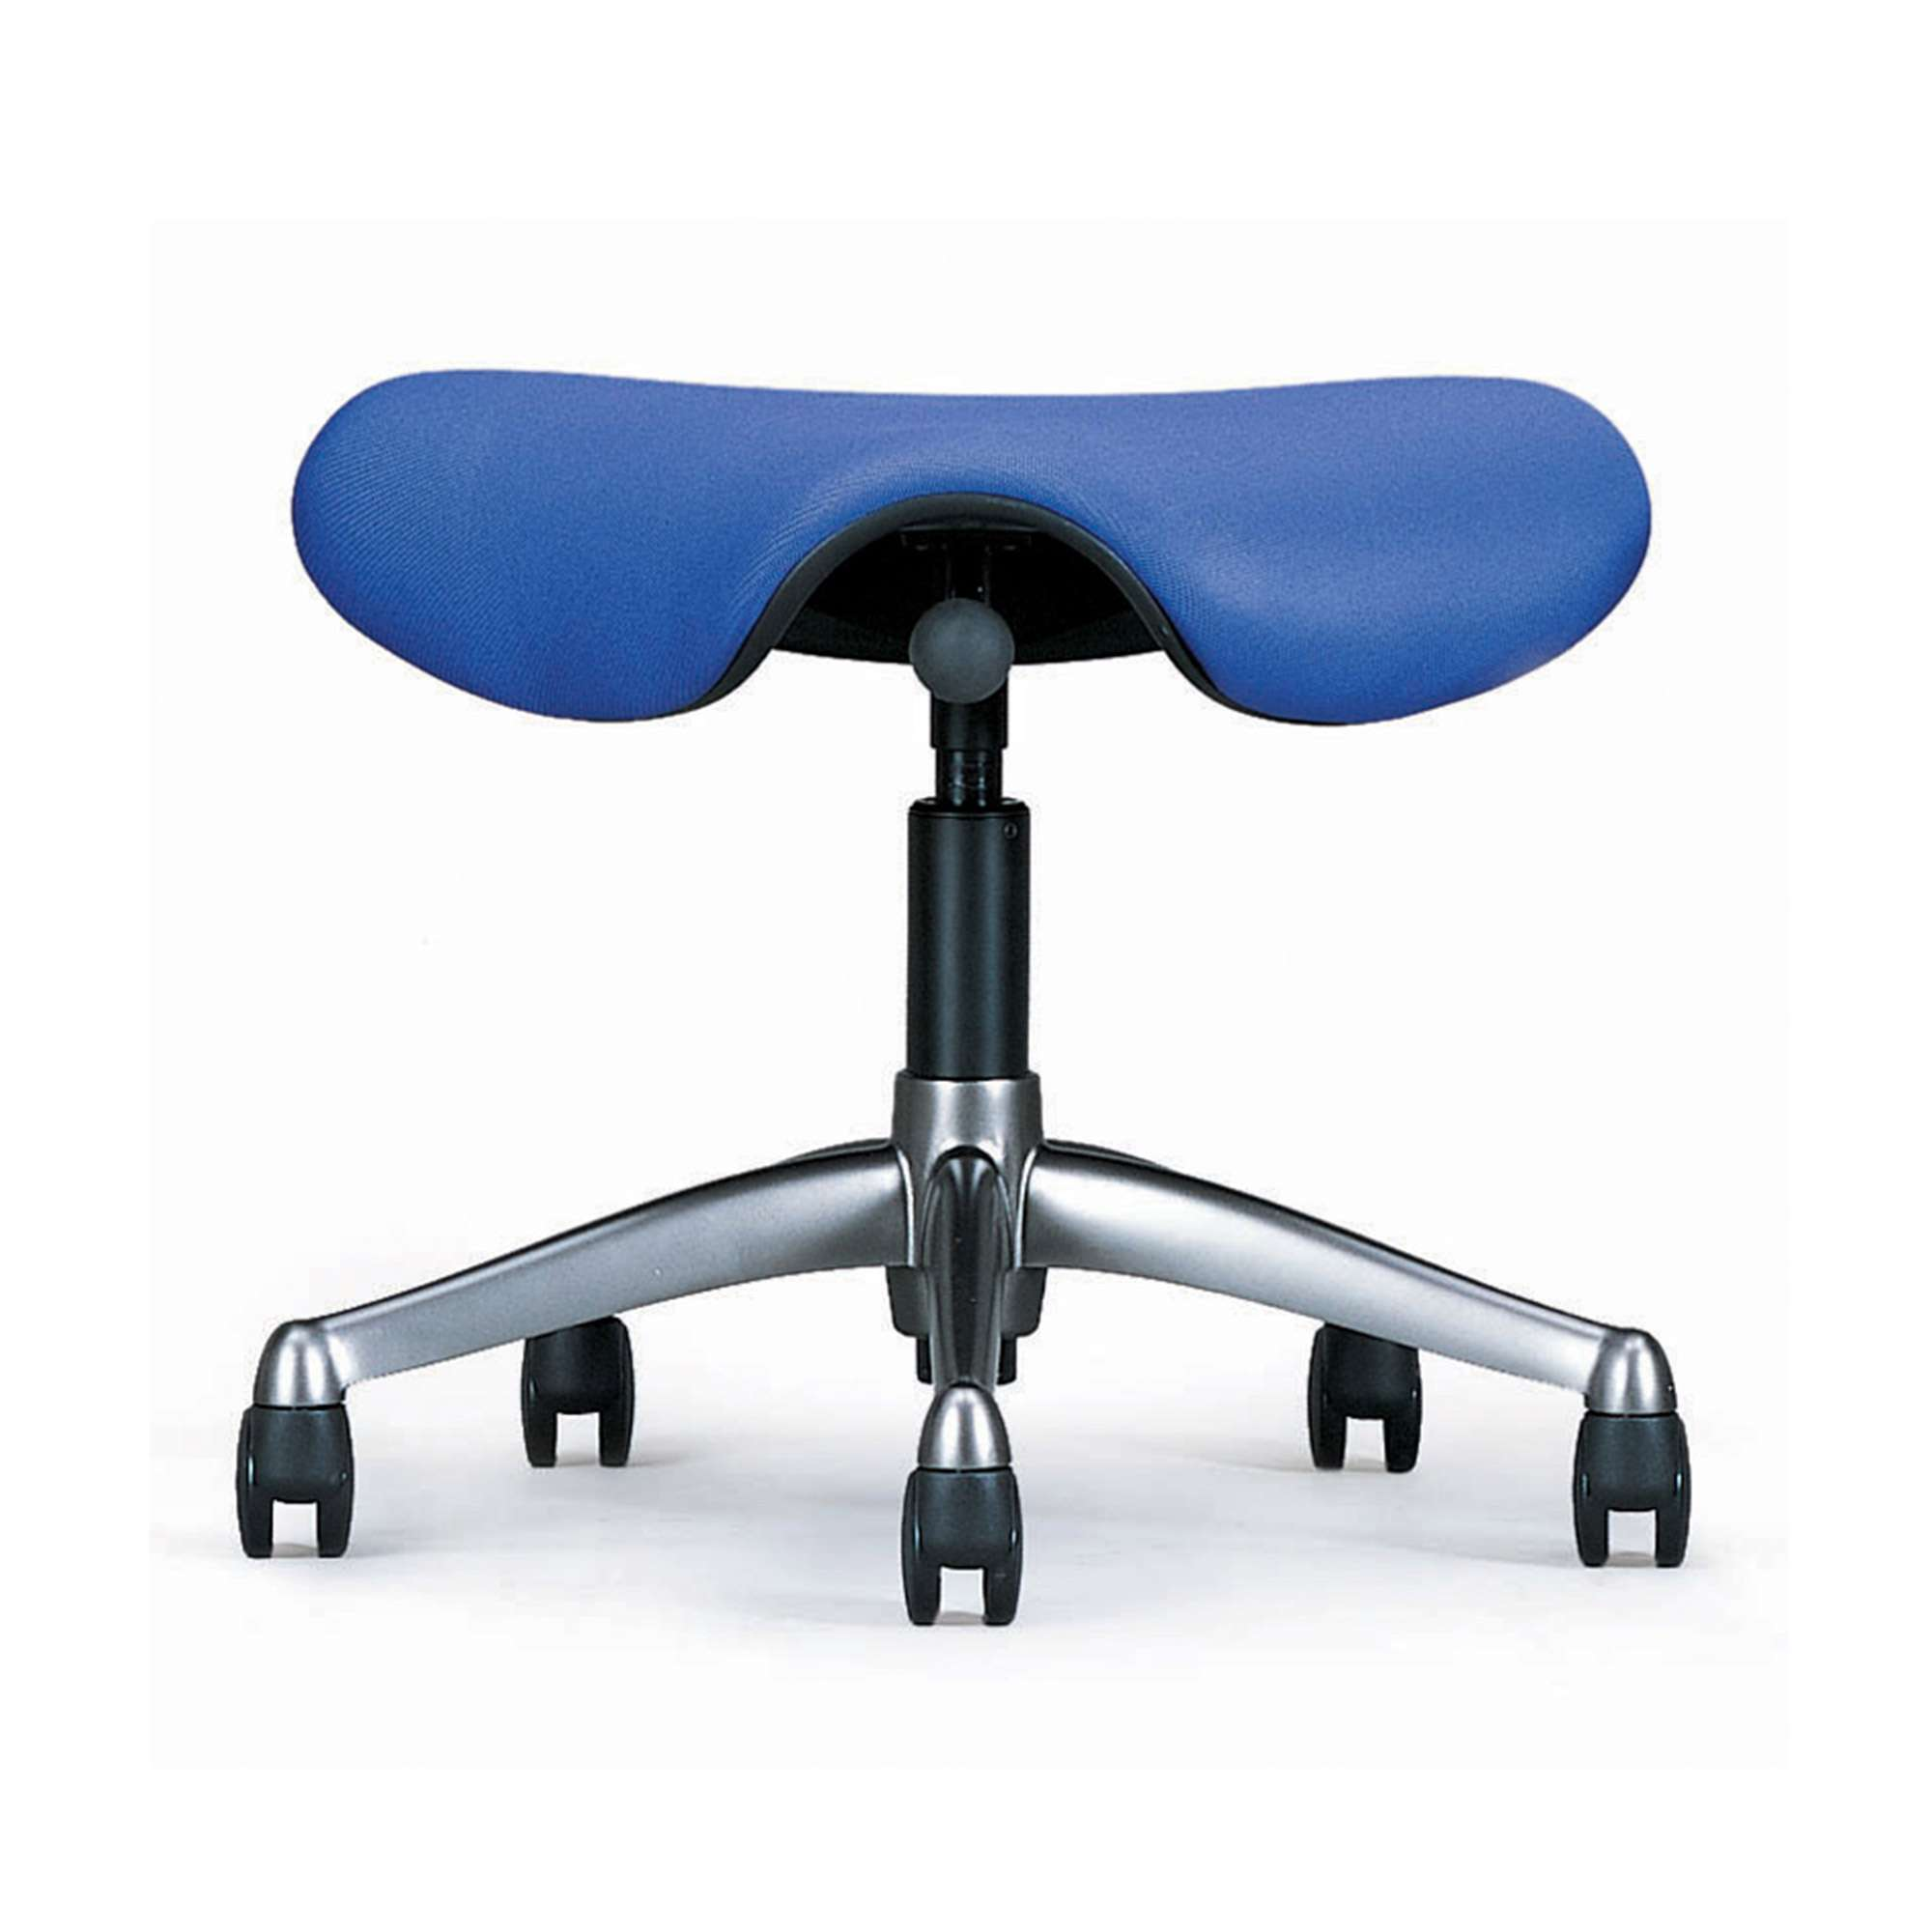 Humanscale chair assembly - Humanscale Freedom Saddle Seat